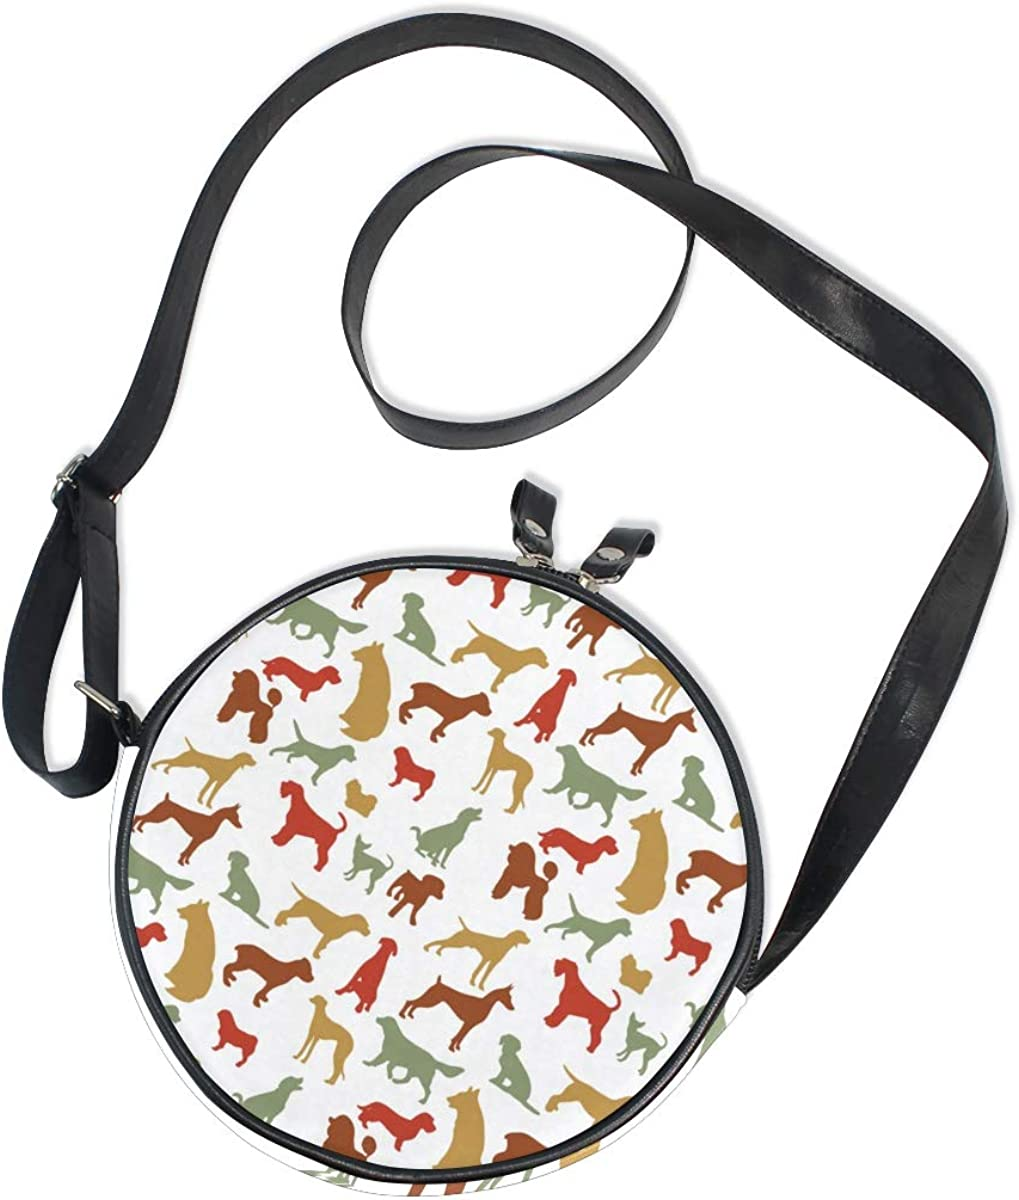 KEAKIA Dog Breed Round Crossbody Bag Shoulder Sling Bag Handbag Purse Satchel Shoulder Bag for Kids Women